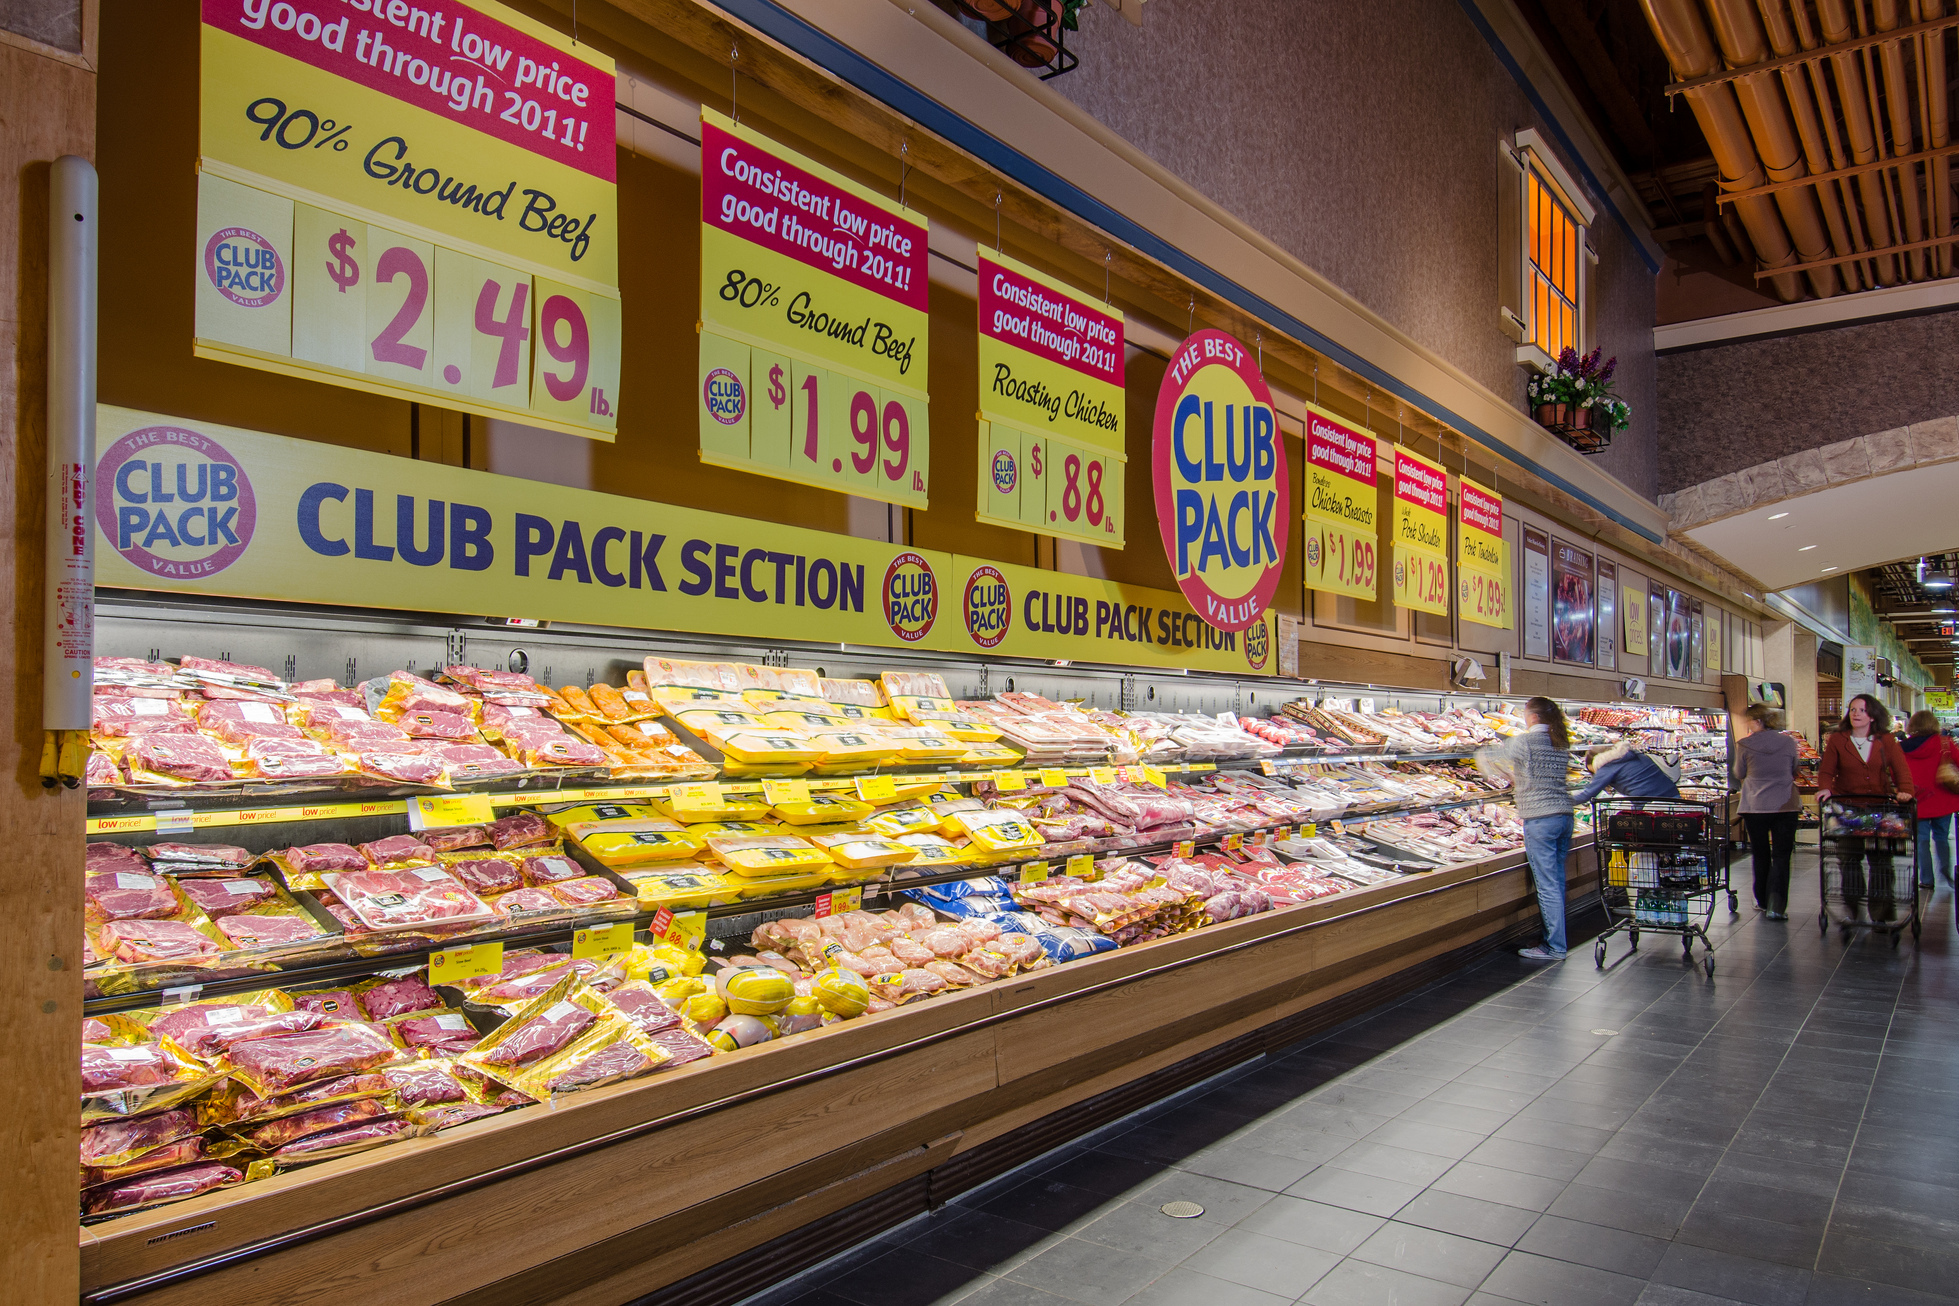 Packaged meat is displayed at a grocery chain.